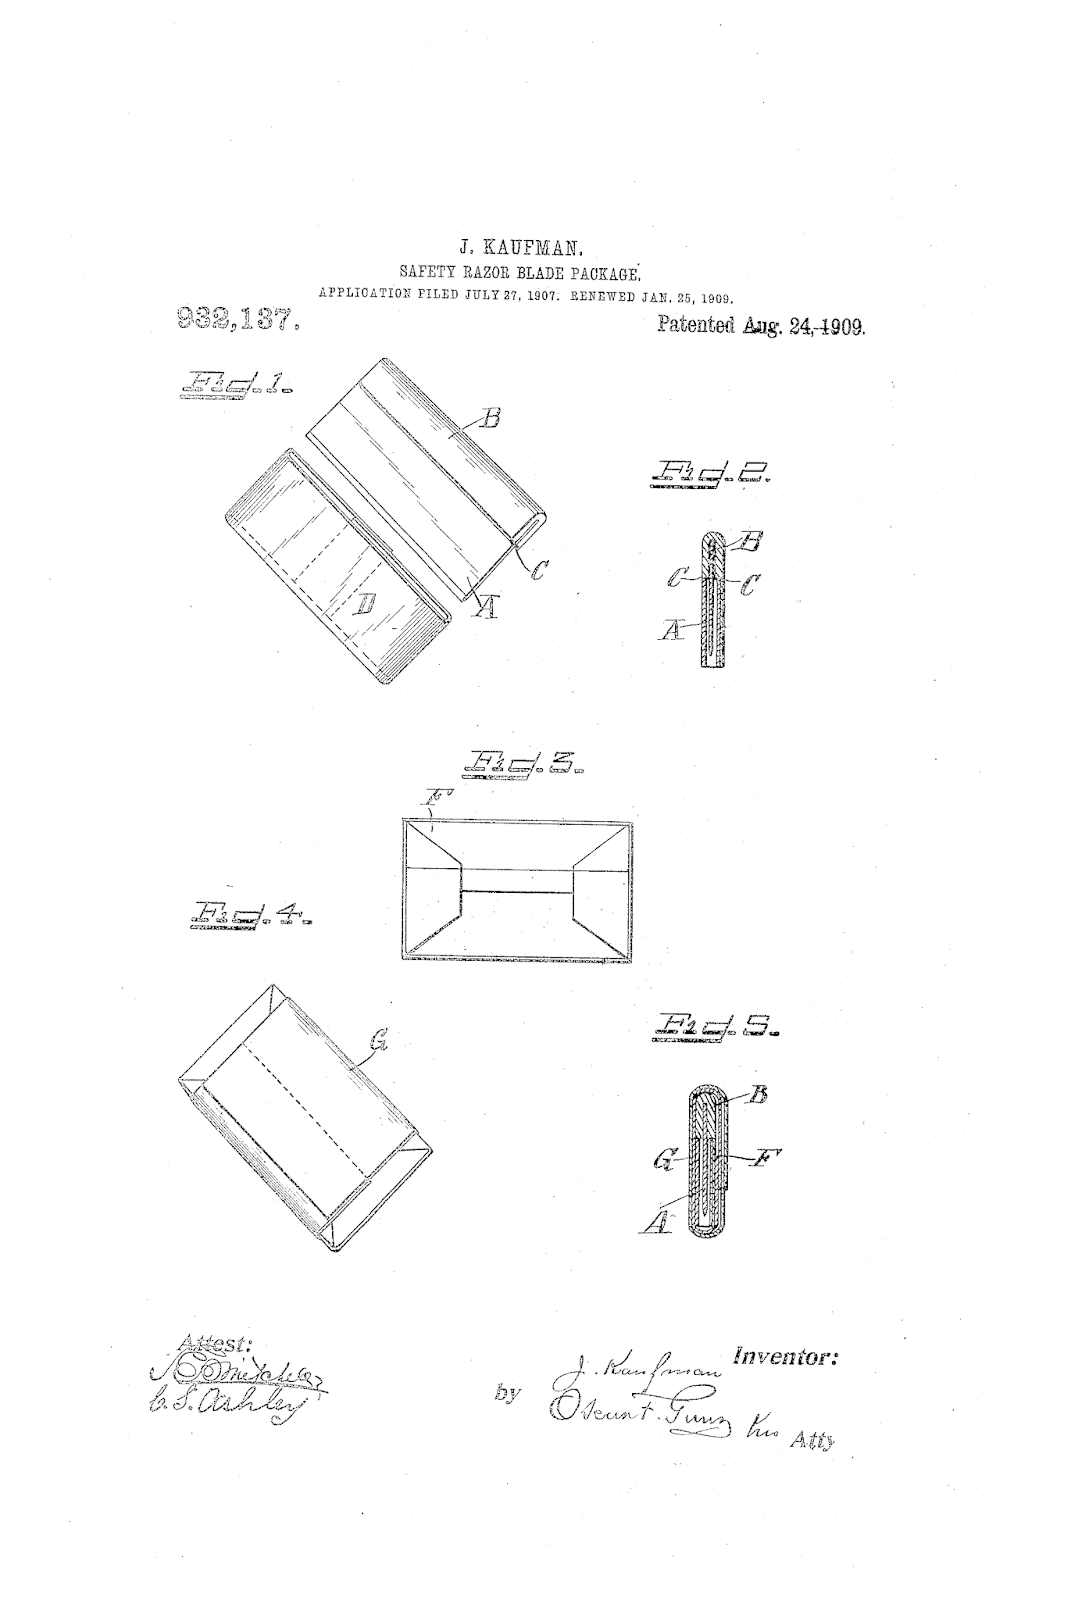 [Image: US932137-drawings-page-1.png]